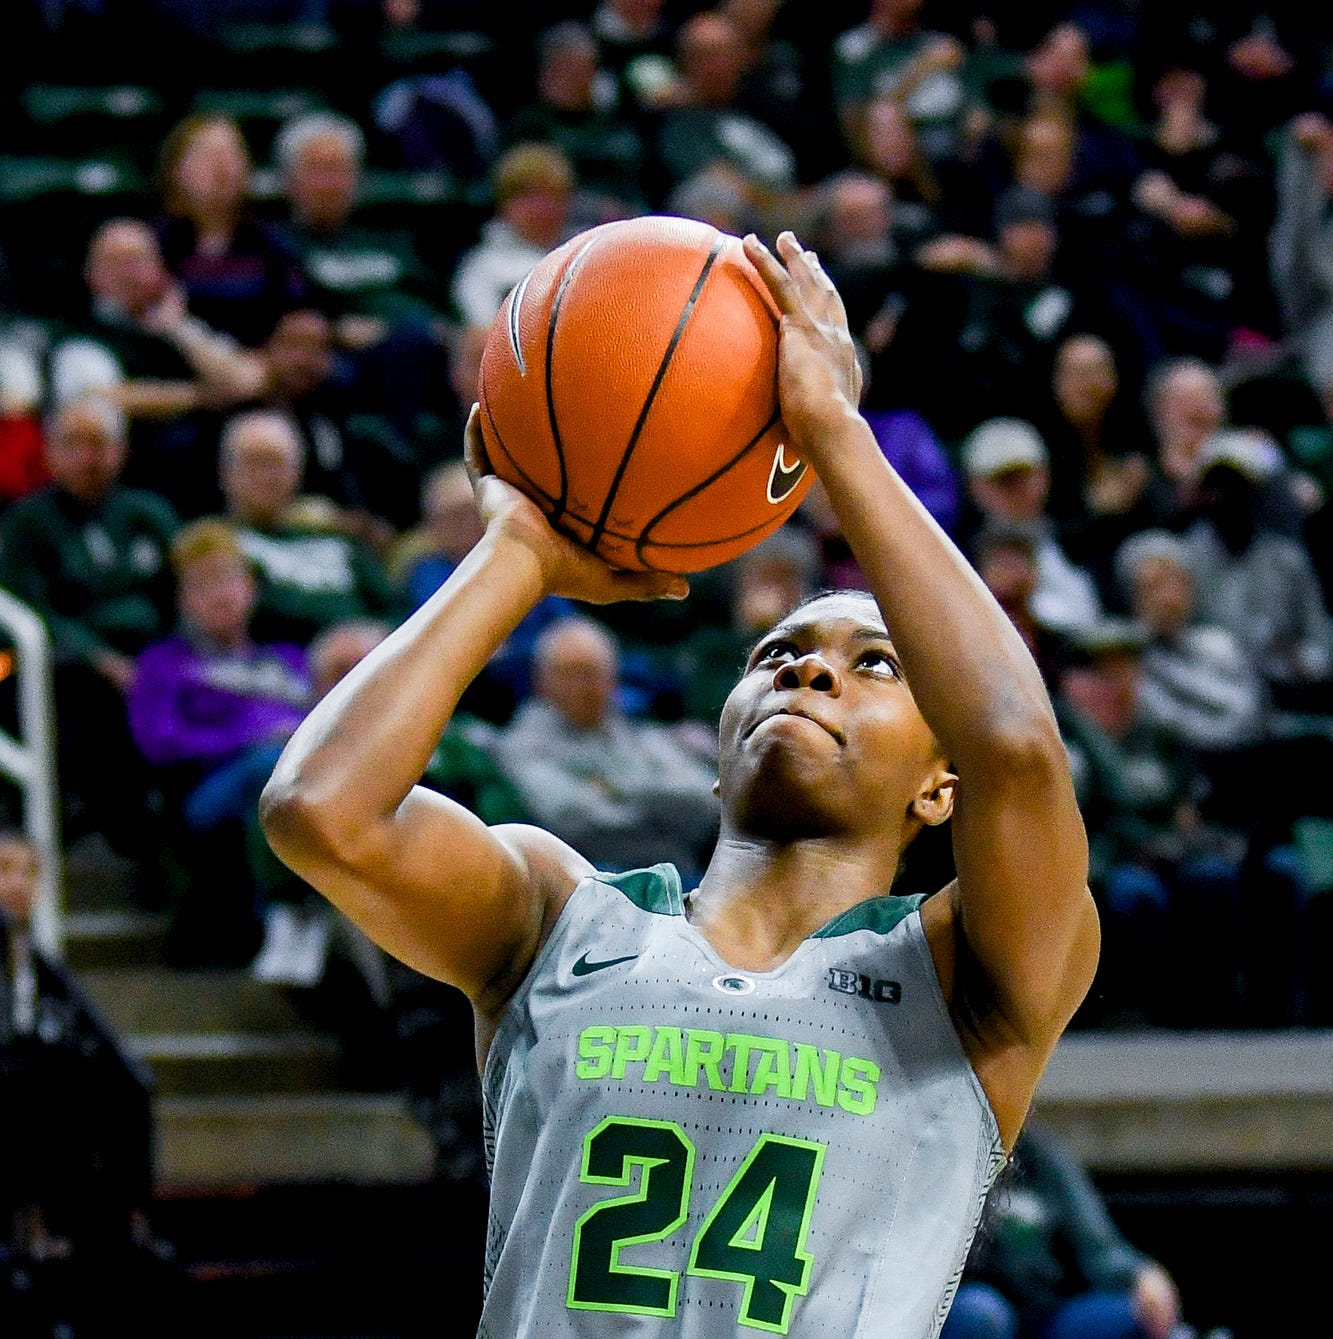 Using a laser focus, Nia Clouden reaching goals in debut season with MSU women's hoops